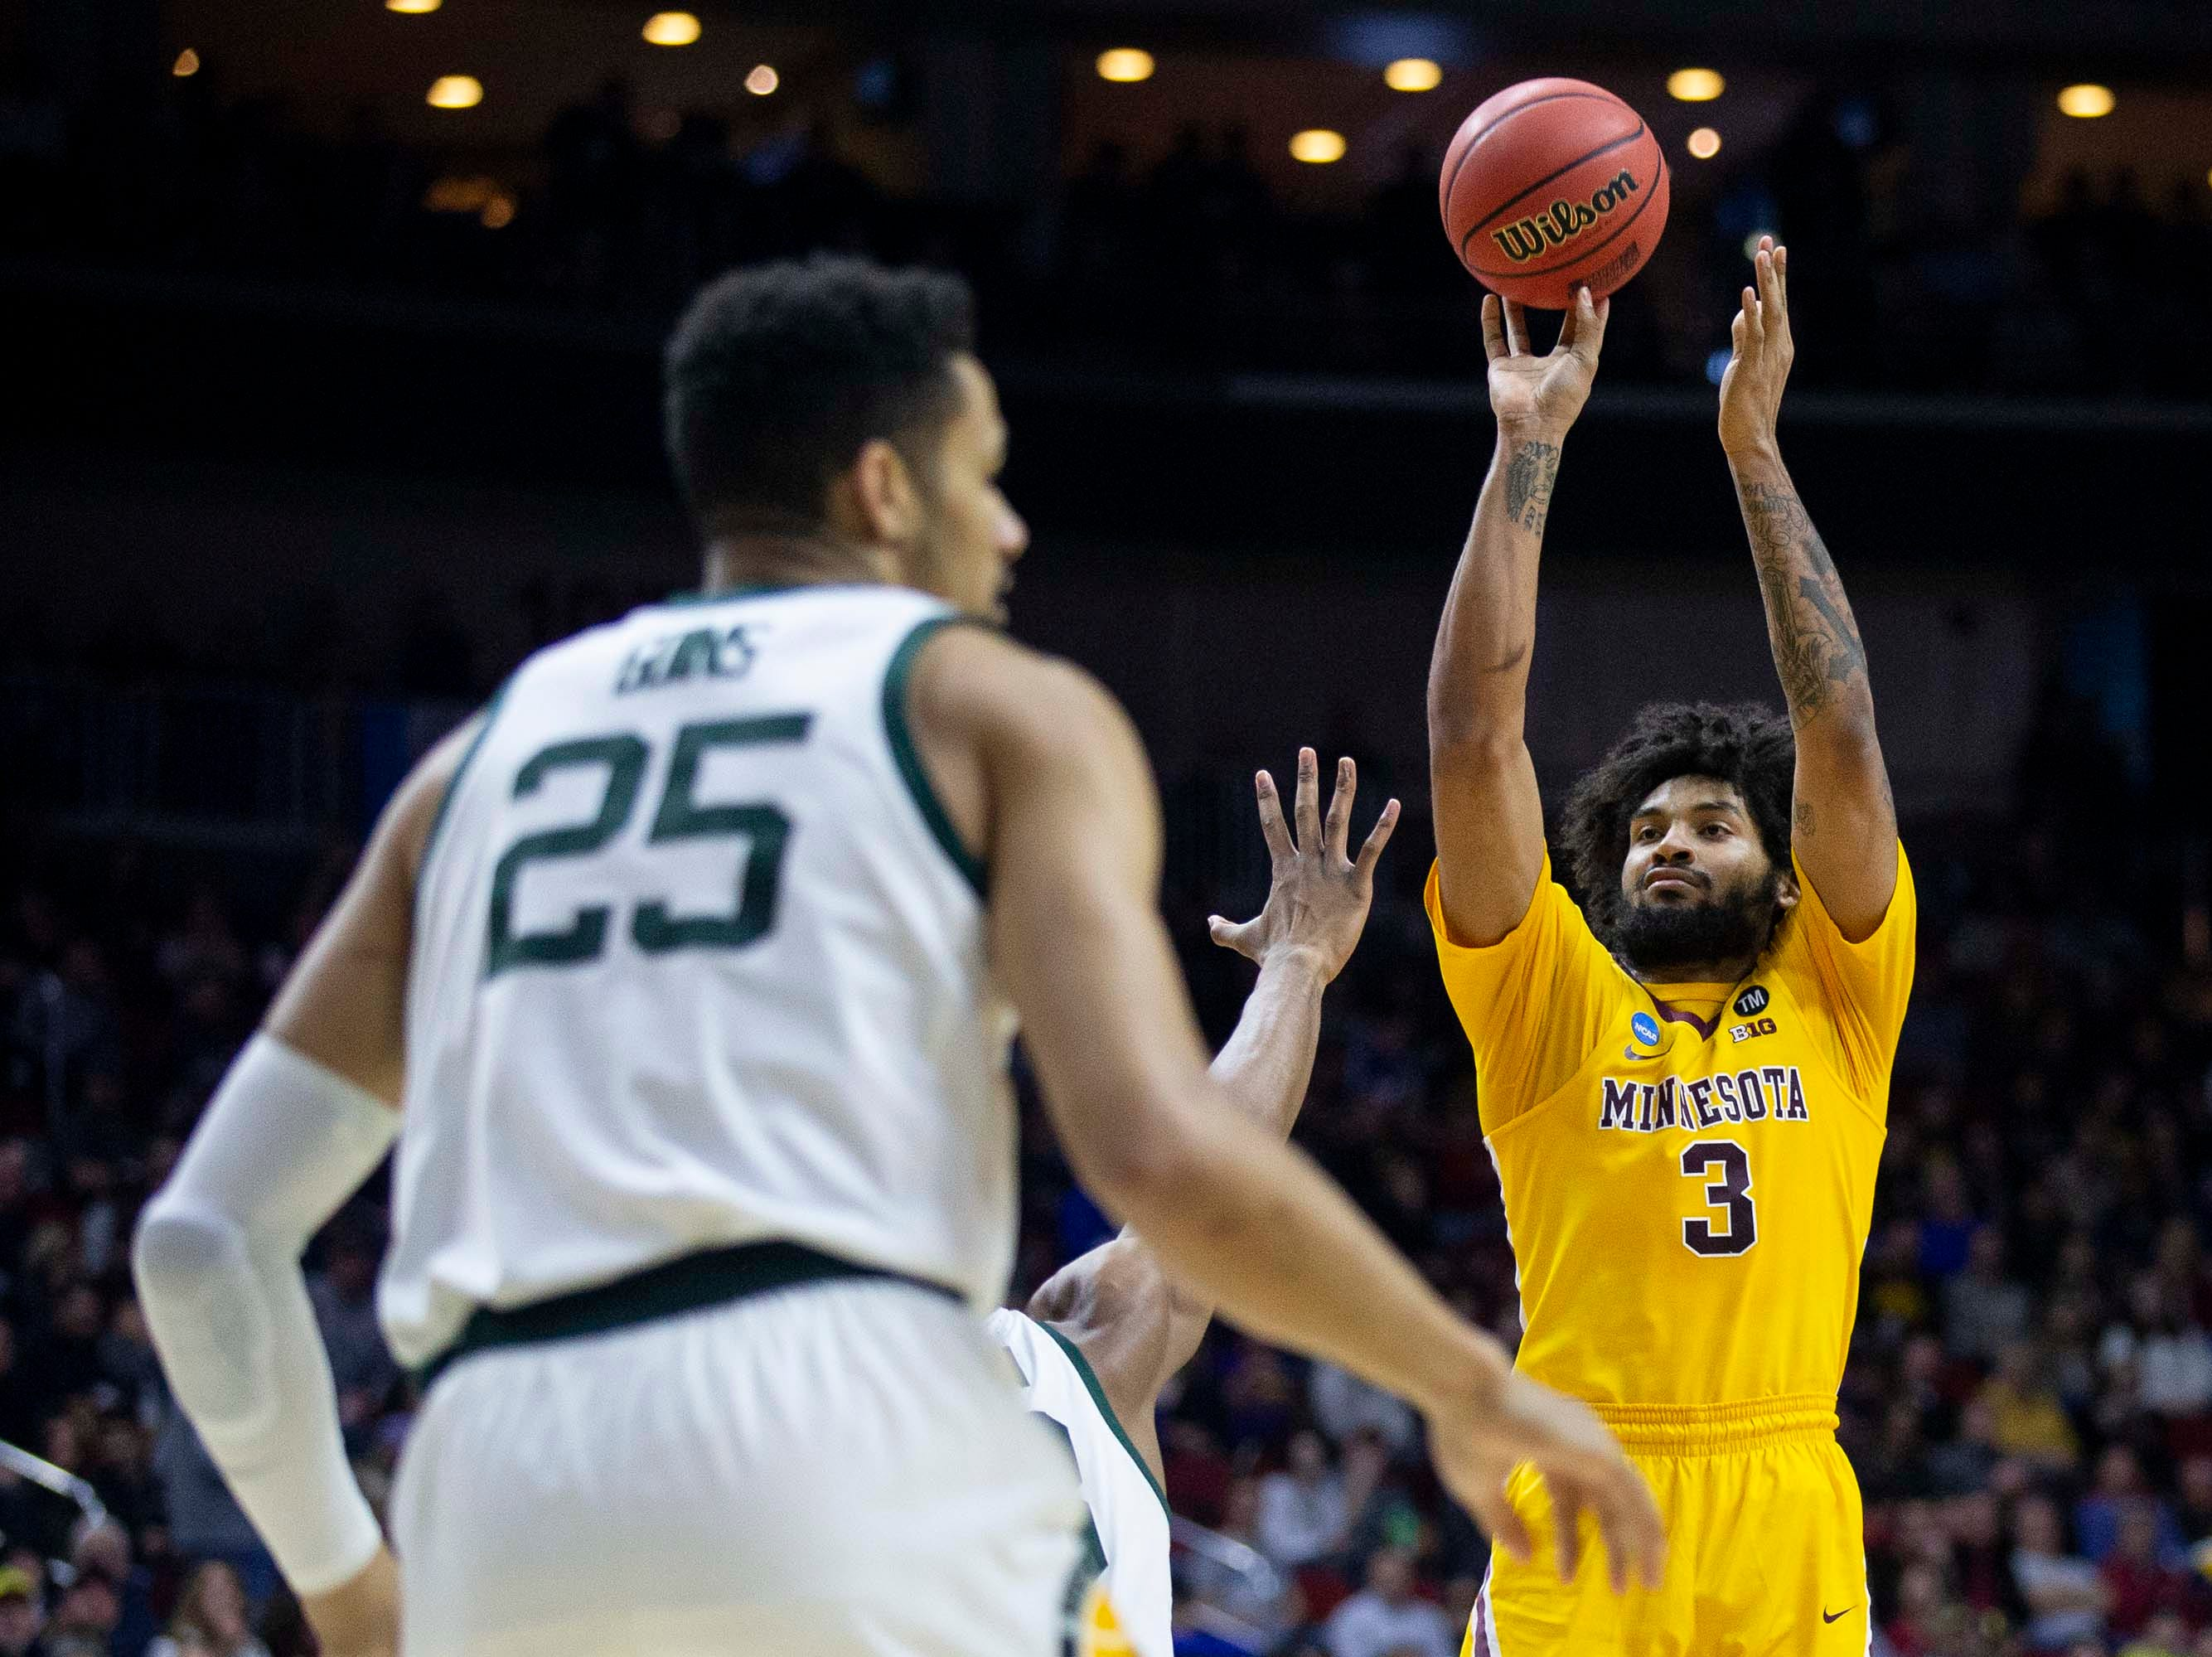 Minnesota's Jordan Murphy shoots the ball during the NCAA Tournament second-round match-up between Minnesota and Michigan State on Saturday, March 23, 2019, in Wells Fargo Arena in Des Moines, Iowa.